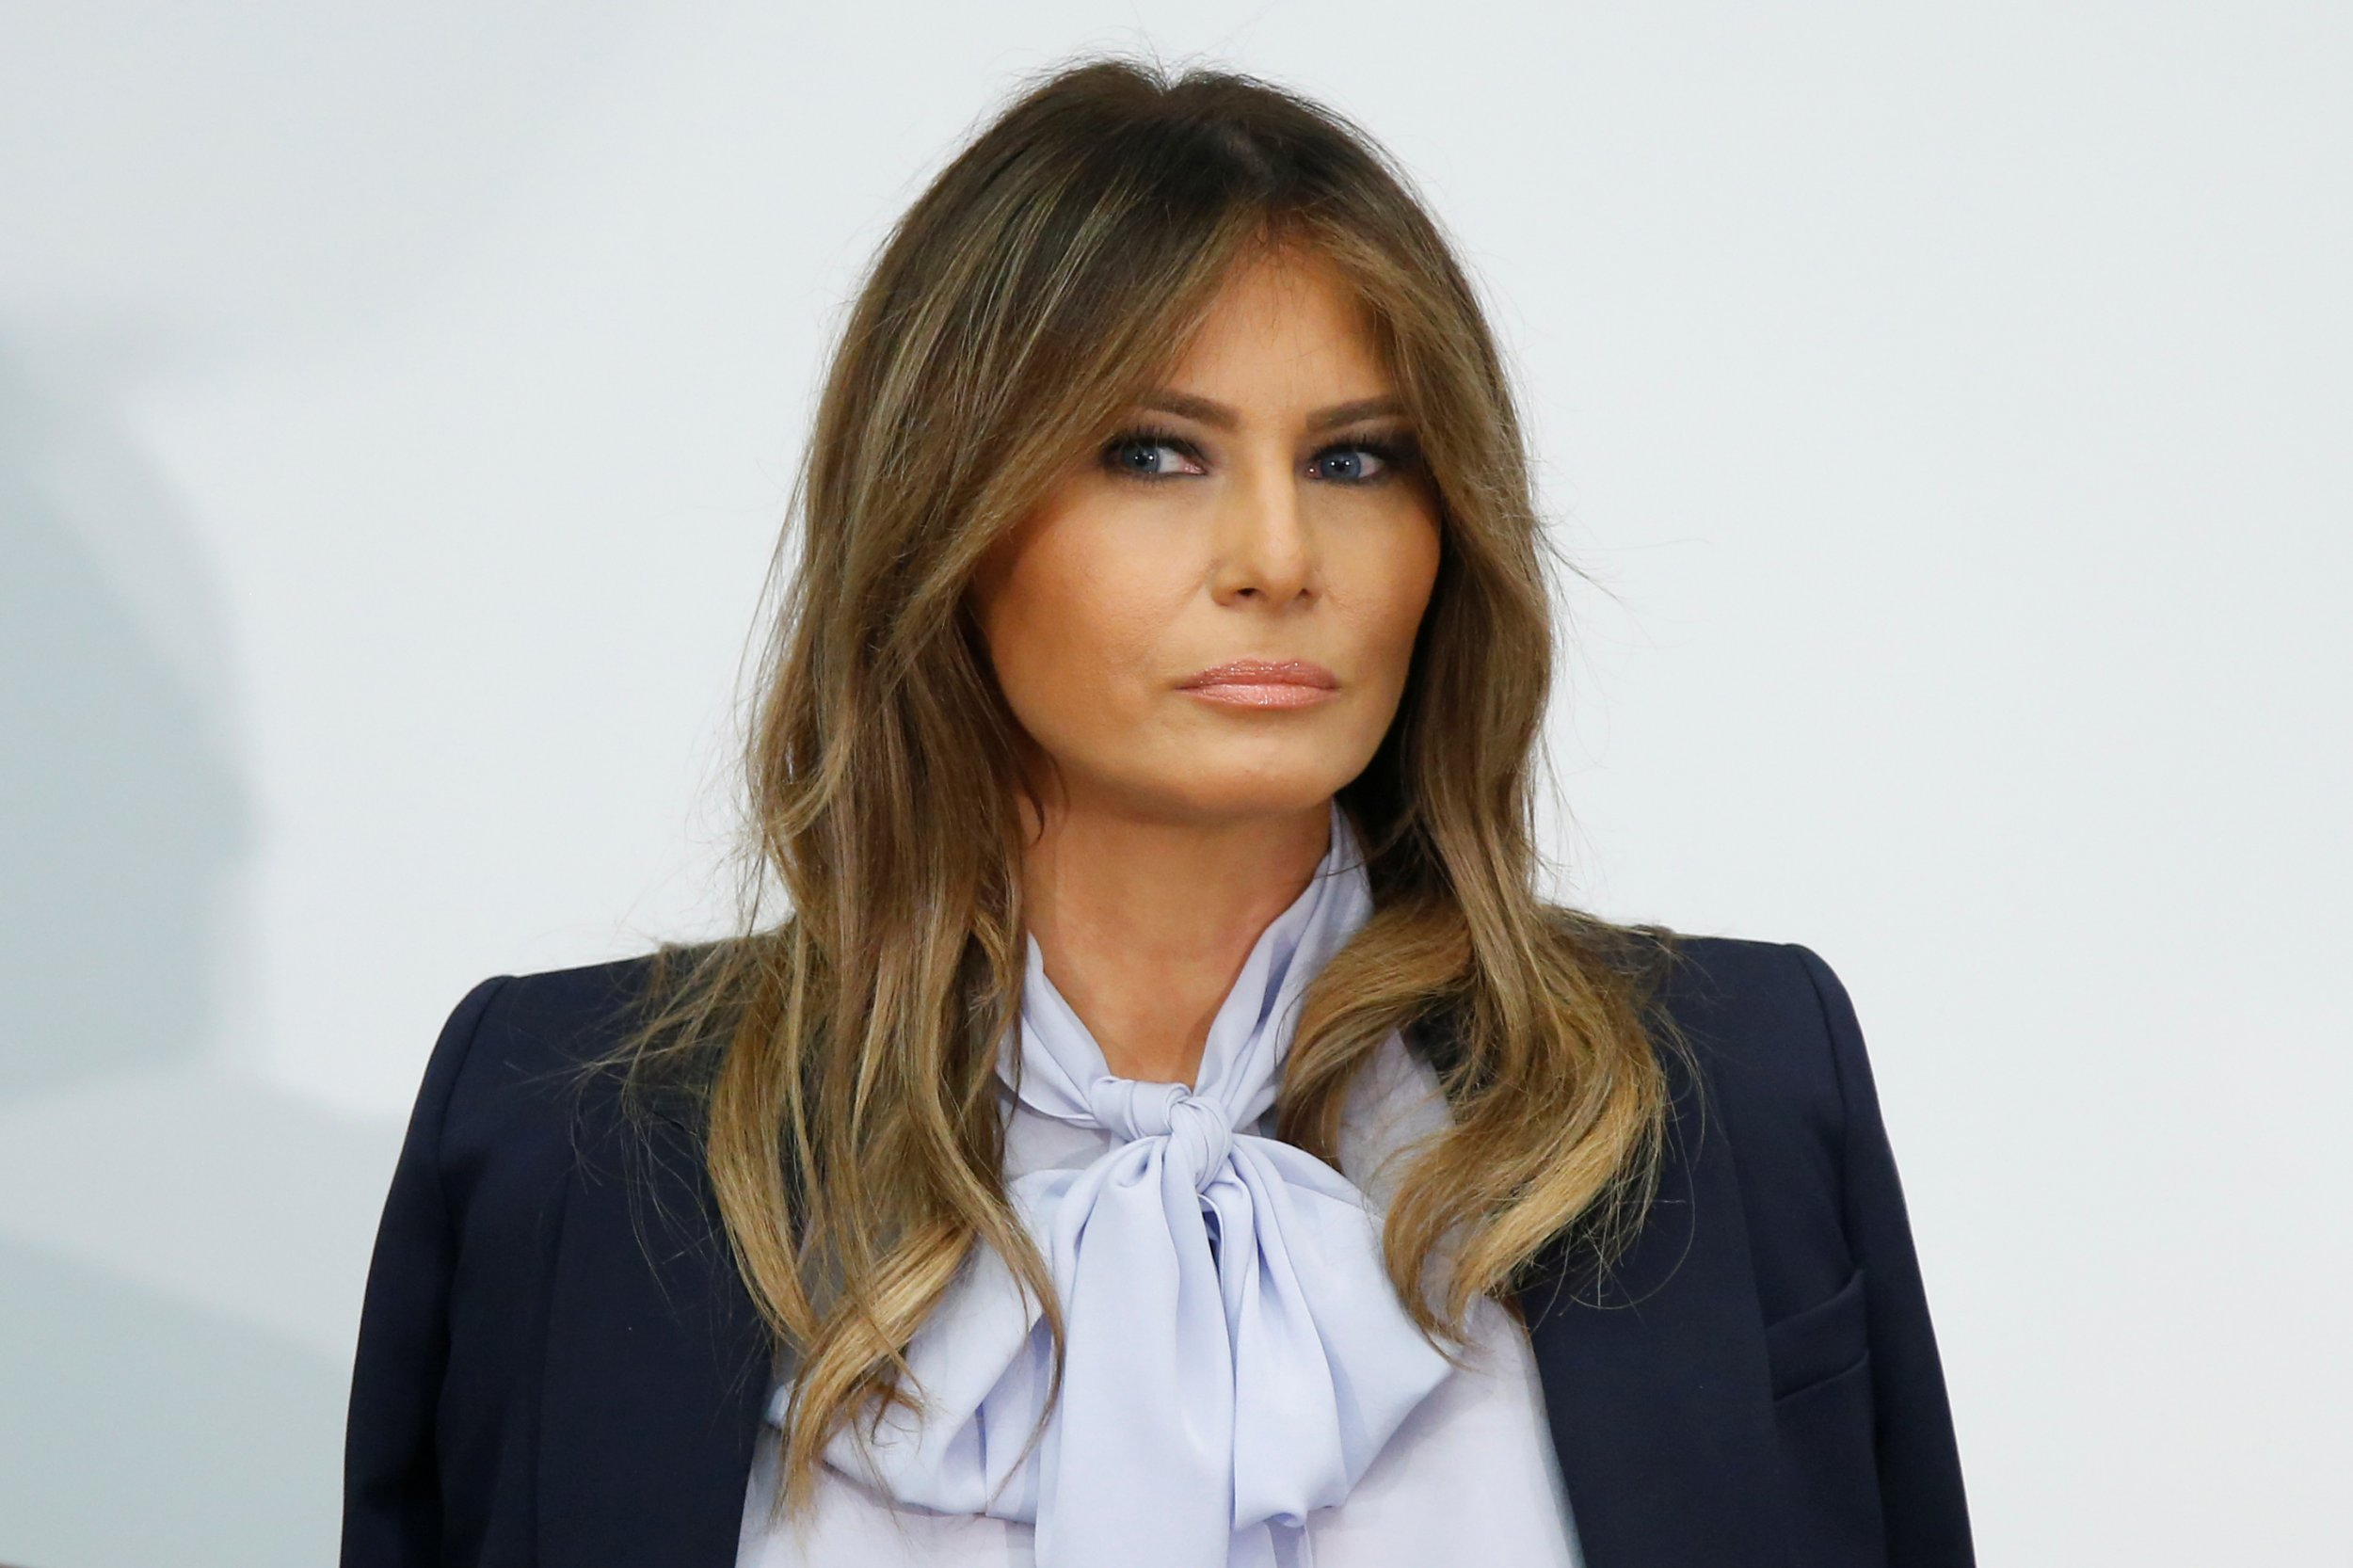 Melania Trump's Spokeswoman Stephanie Grisham Violated ...